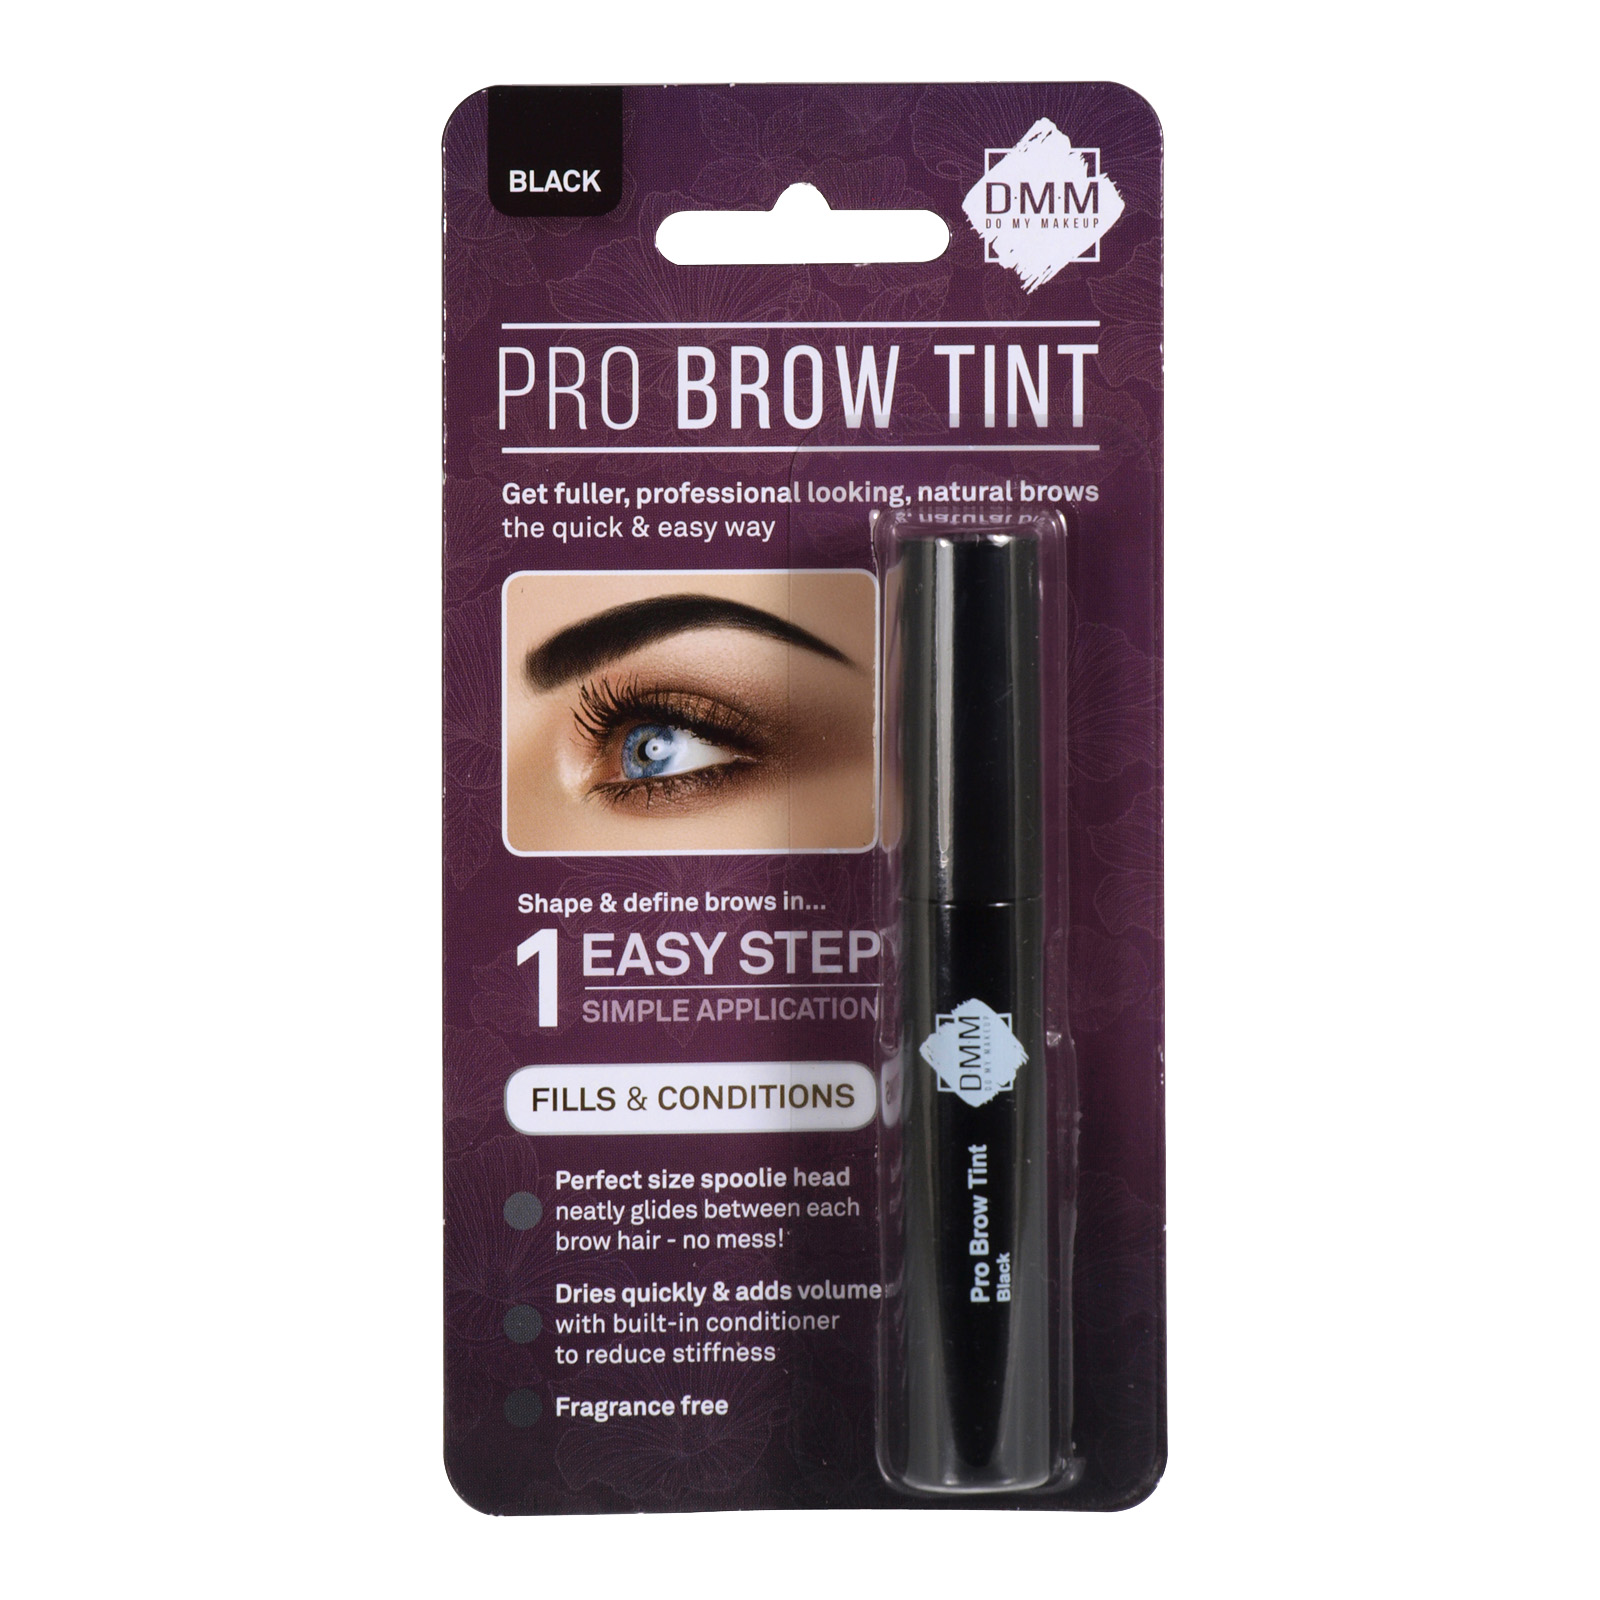 DMM PRO BROW TINT MIX BLACK